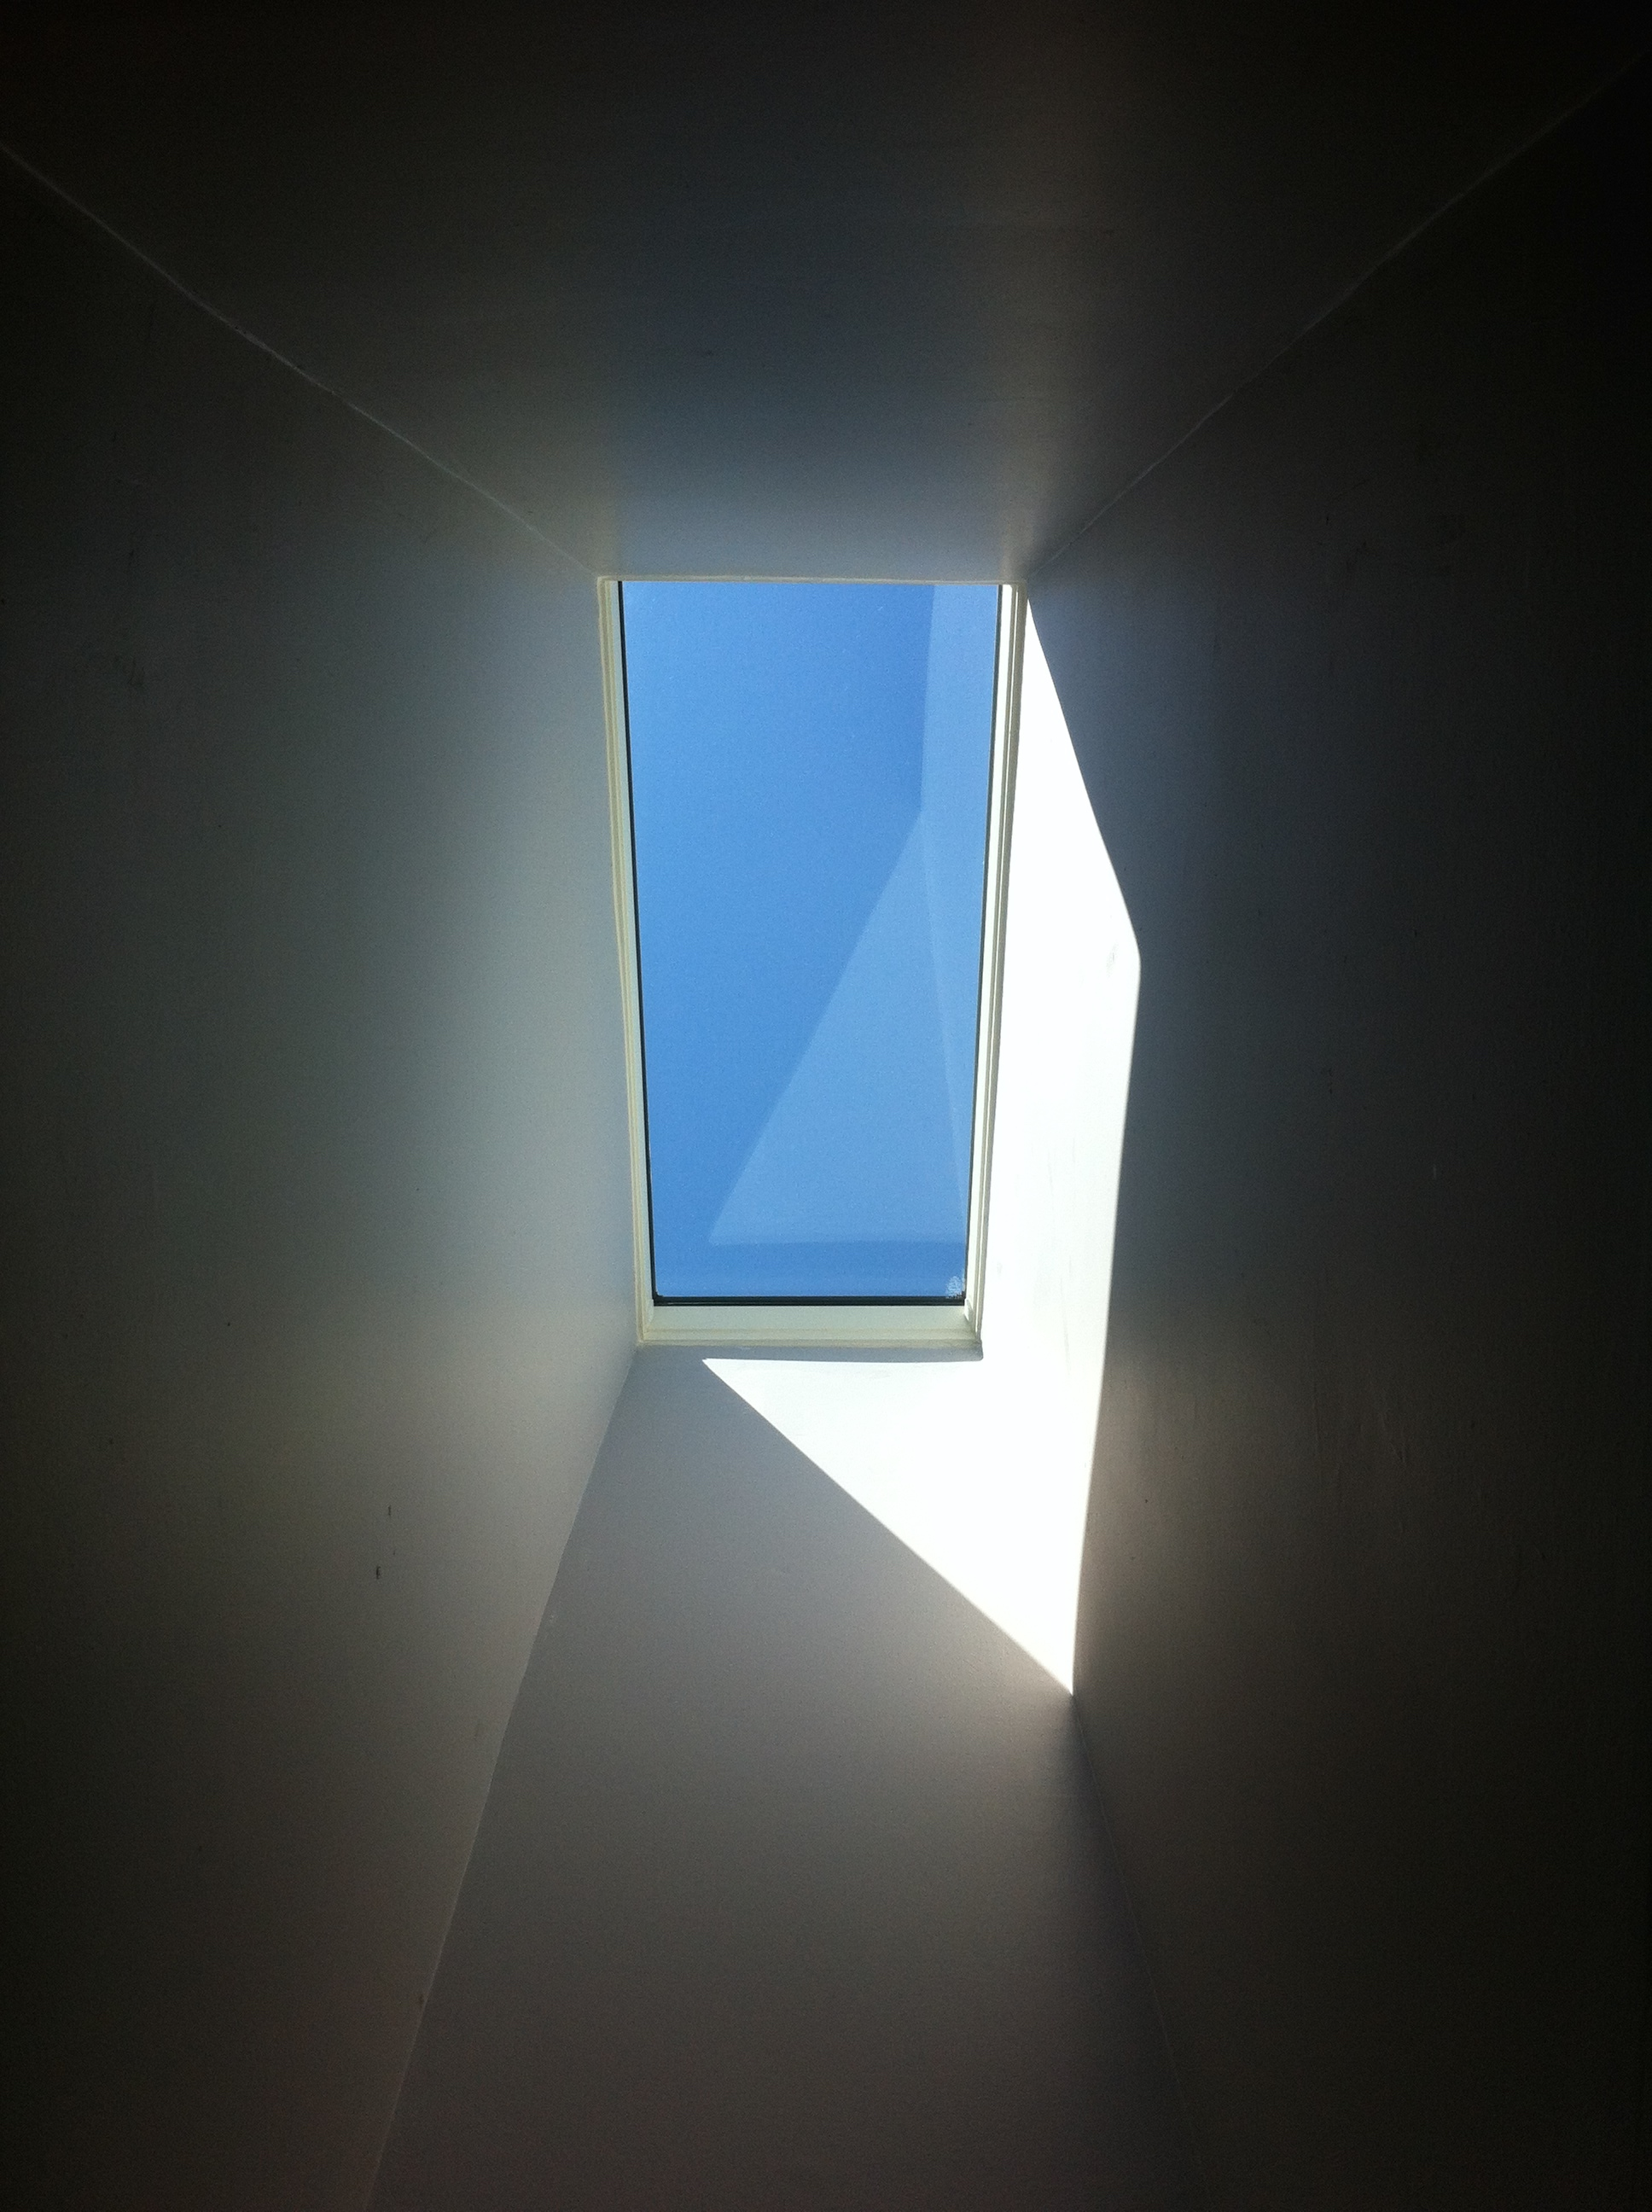 Velux Deck Mount Skylight - Interior